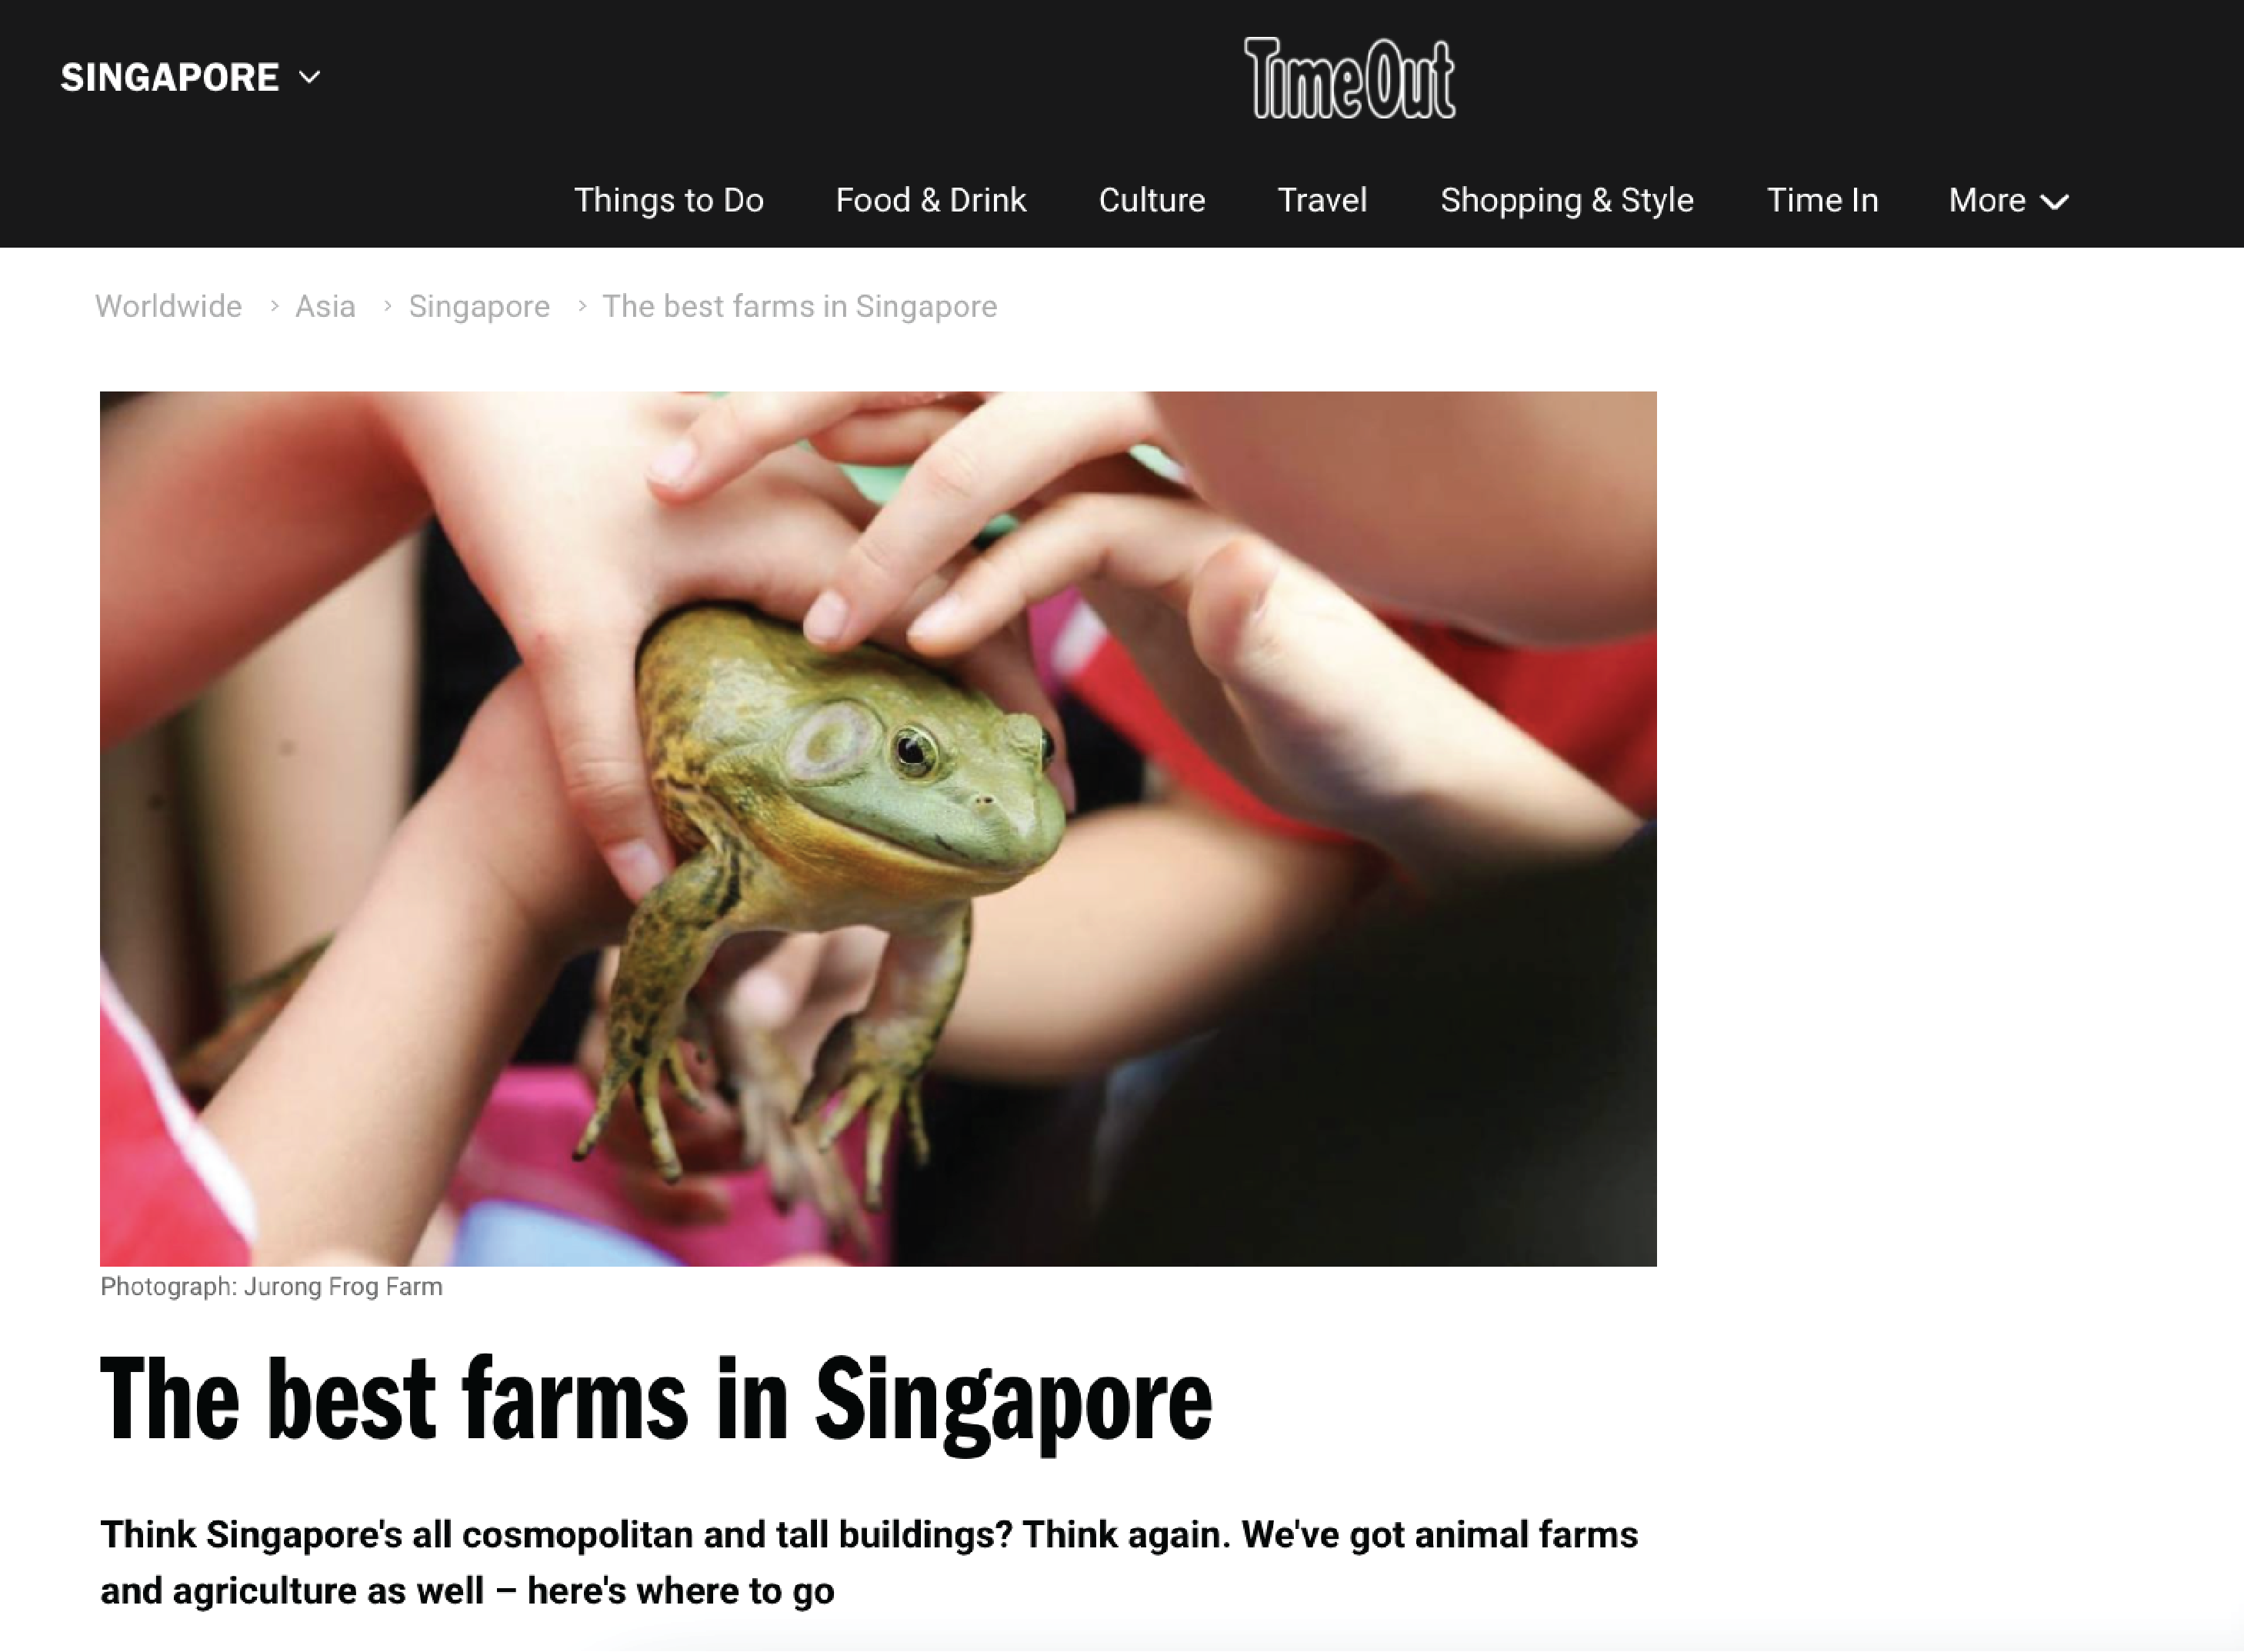 TimeOut article of the best farms in Singapore